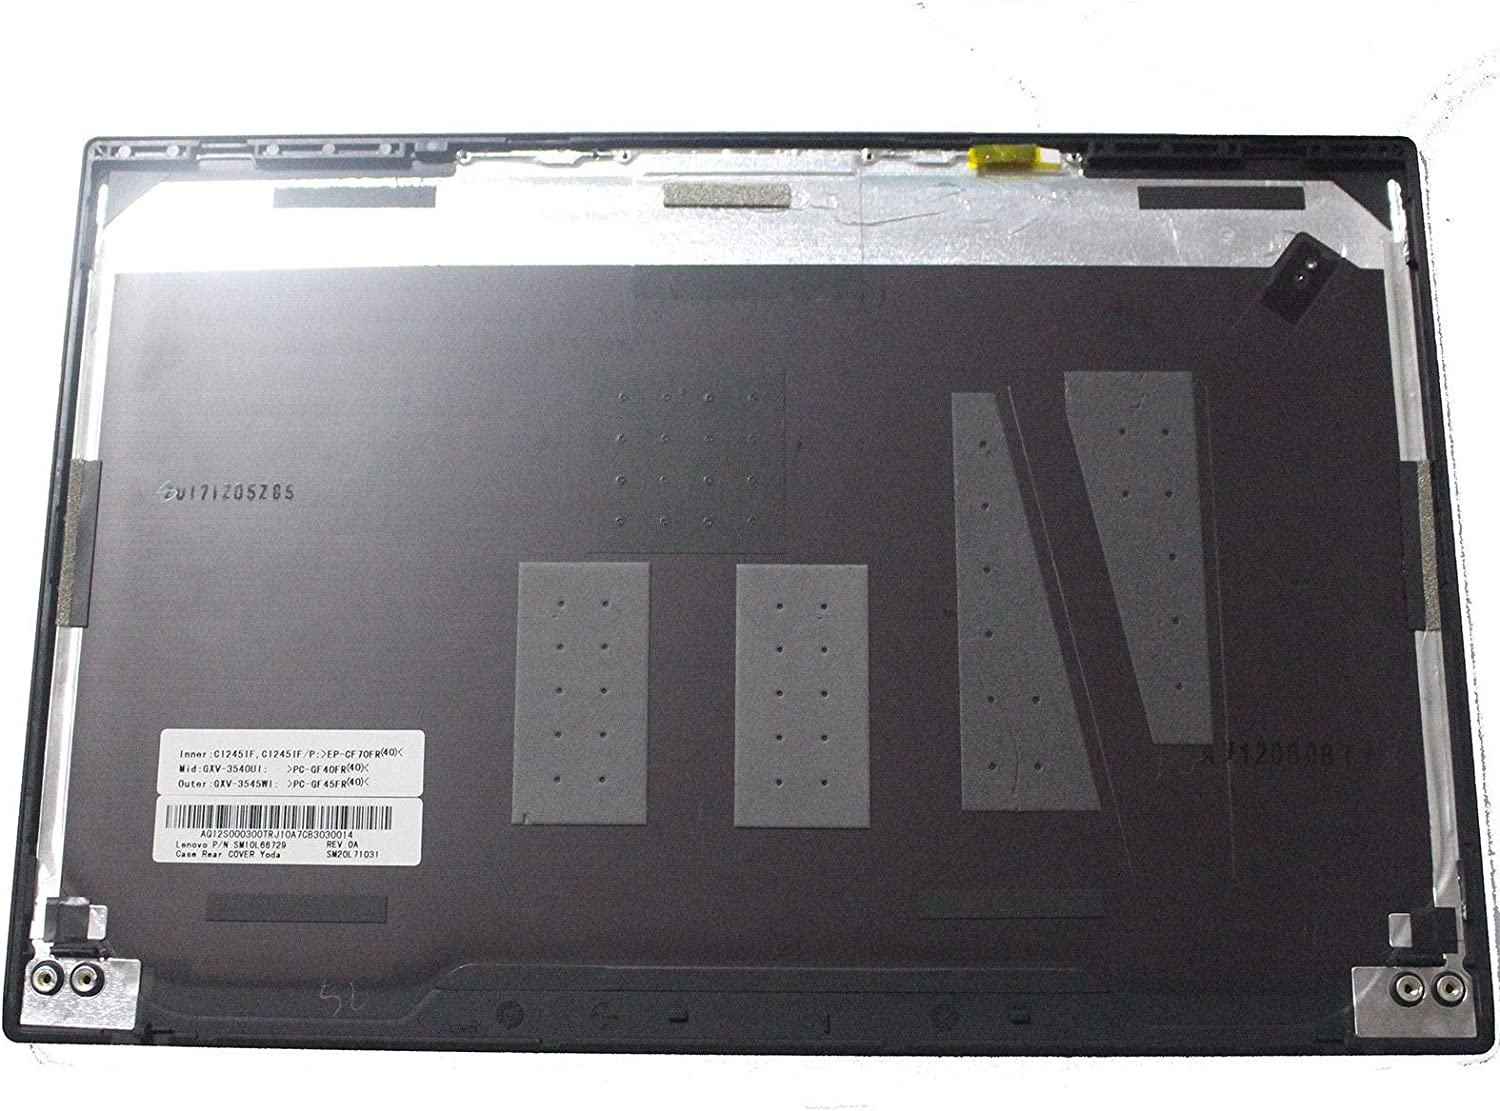 New for Lenovo ThinkPad X1 Carbon 5TH 2017 LCD Back Cover Rear Top Lid 01LV476